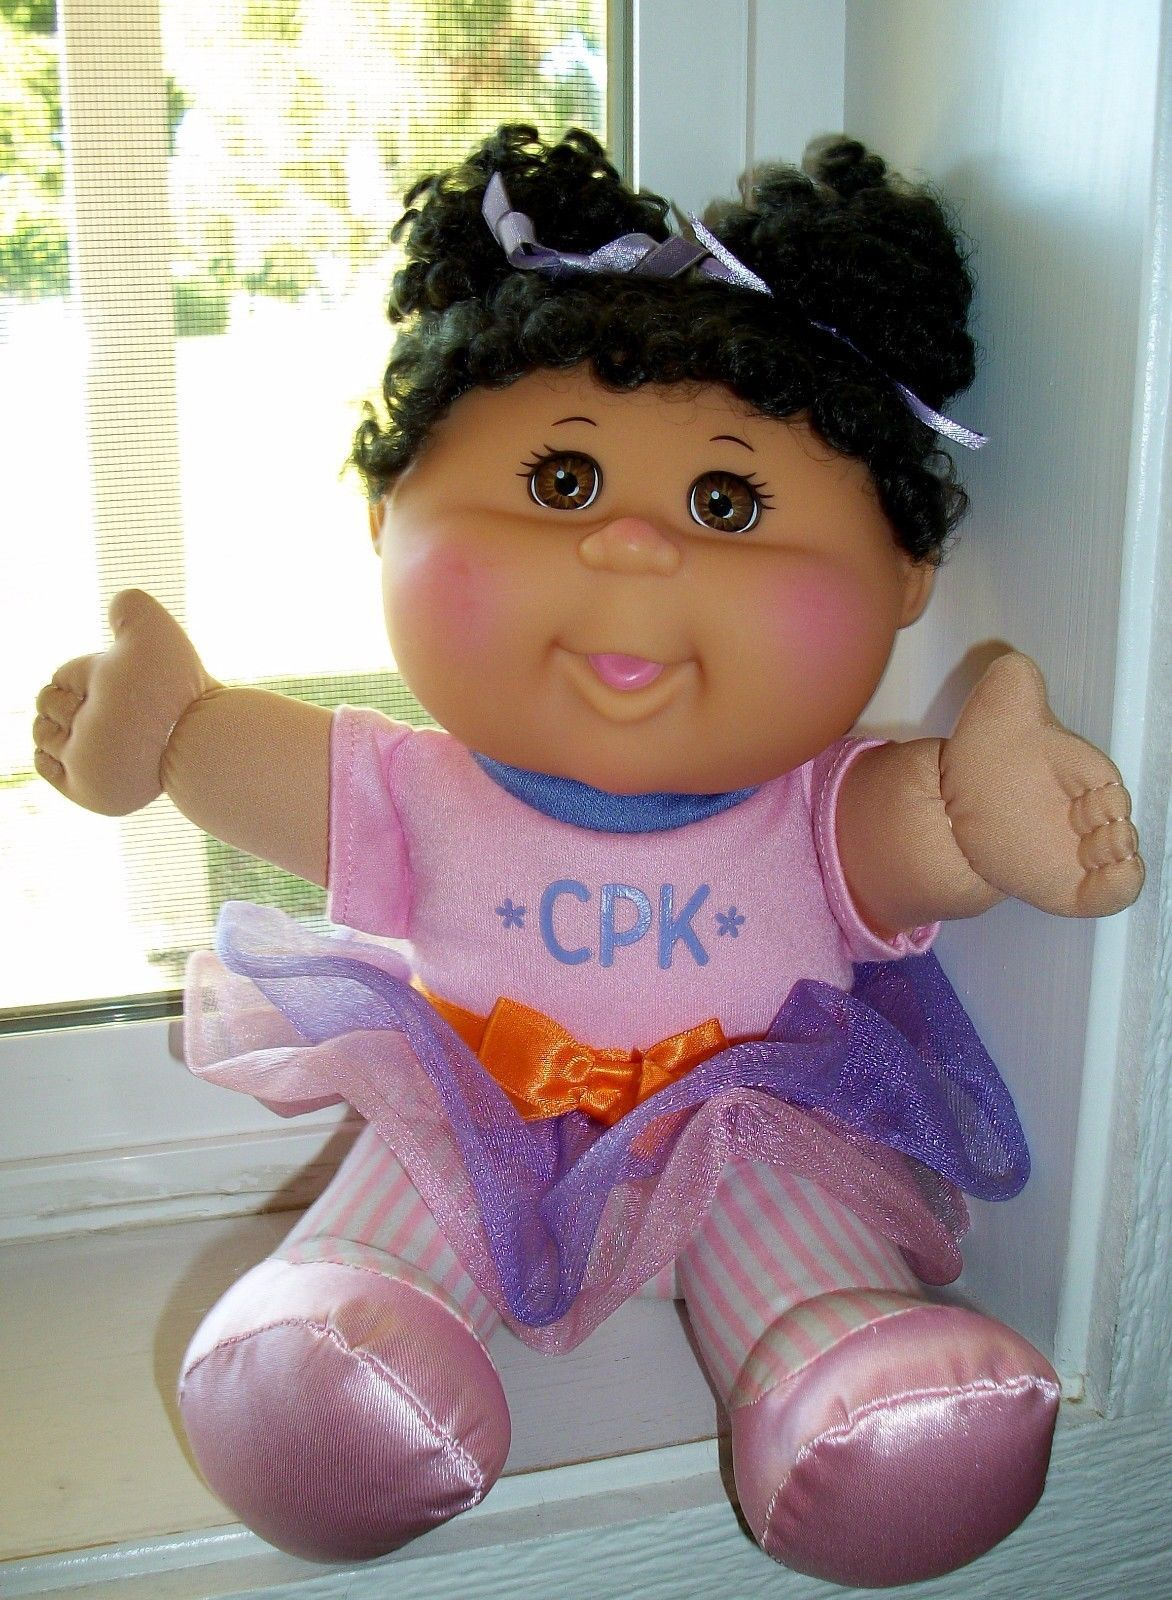 Cabbage Patch Kids Doll Dark Curly Hair and 1 similar items